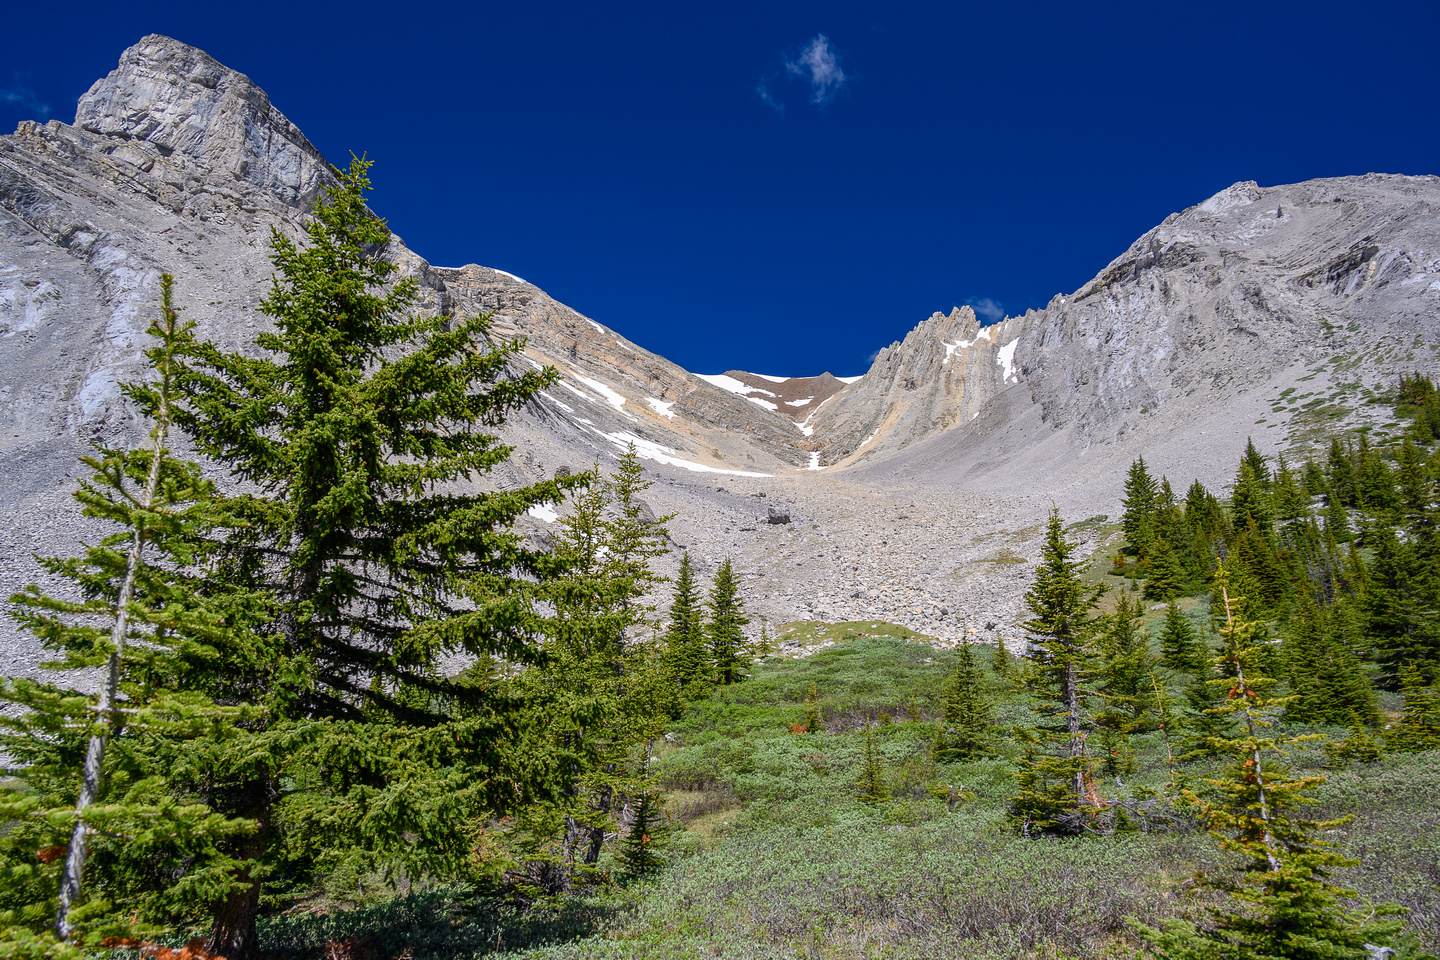 Lovely alpine meadows in the valley south of Psychic Peak, views up towards the peak.